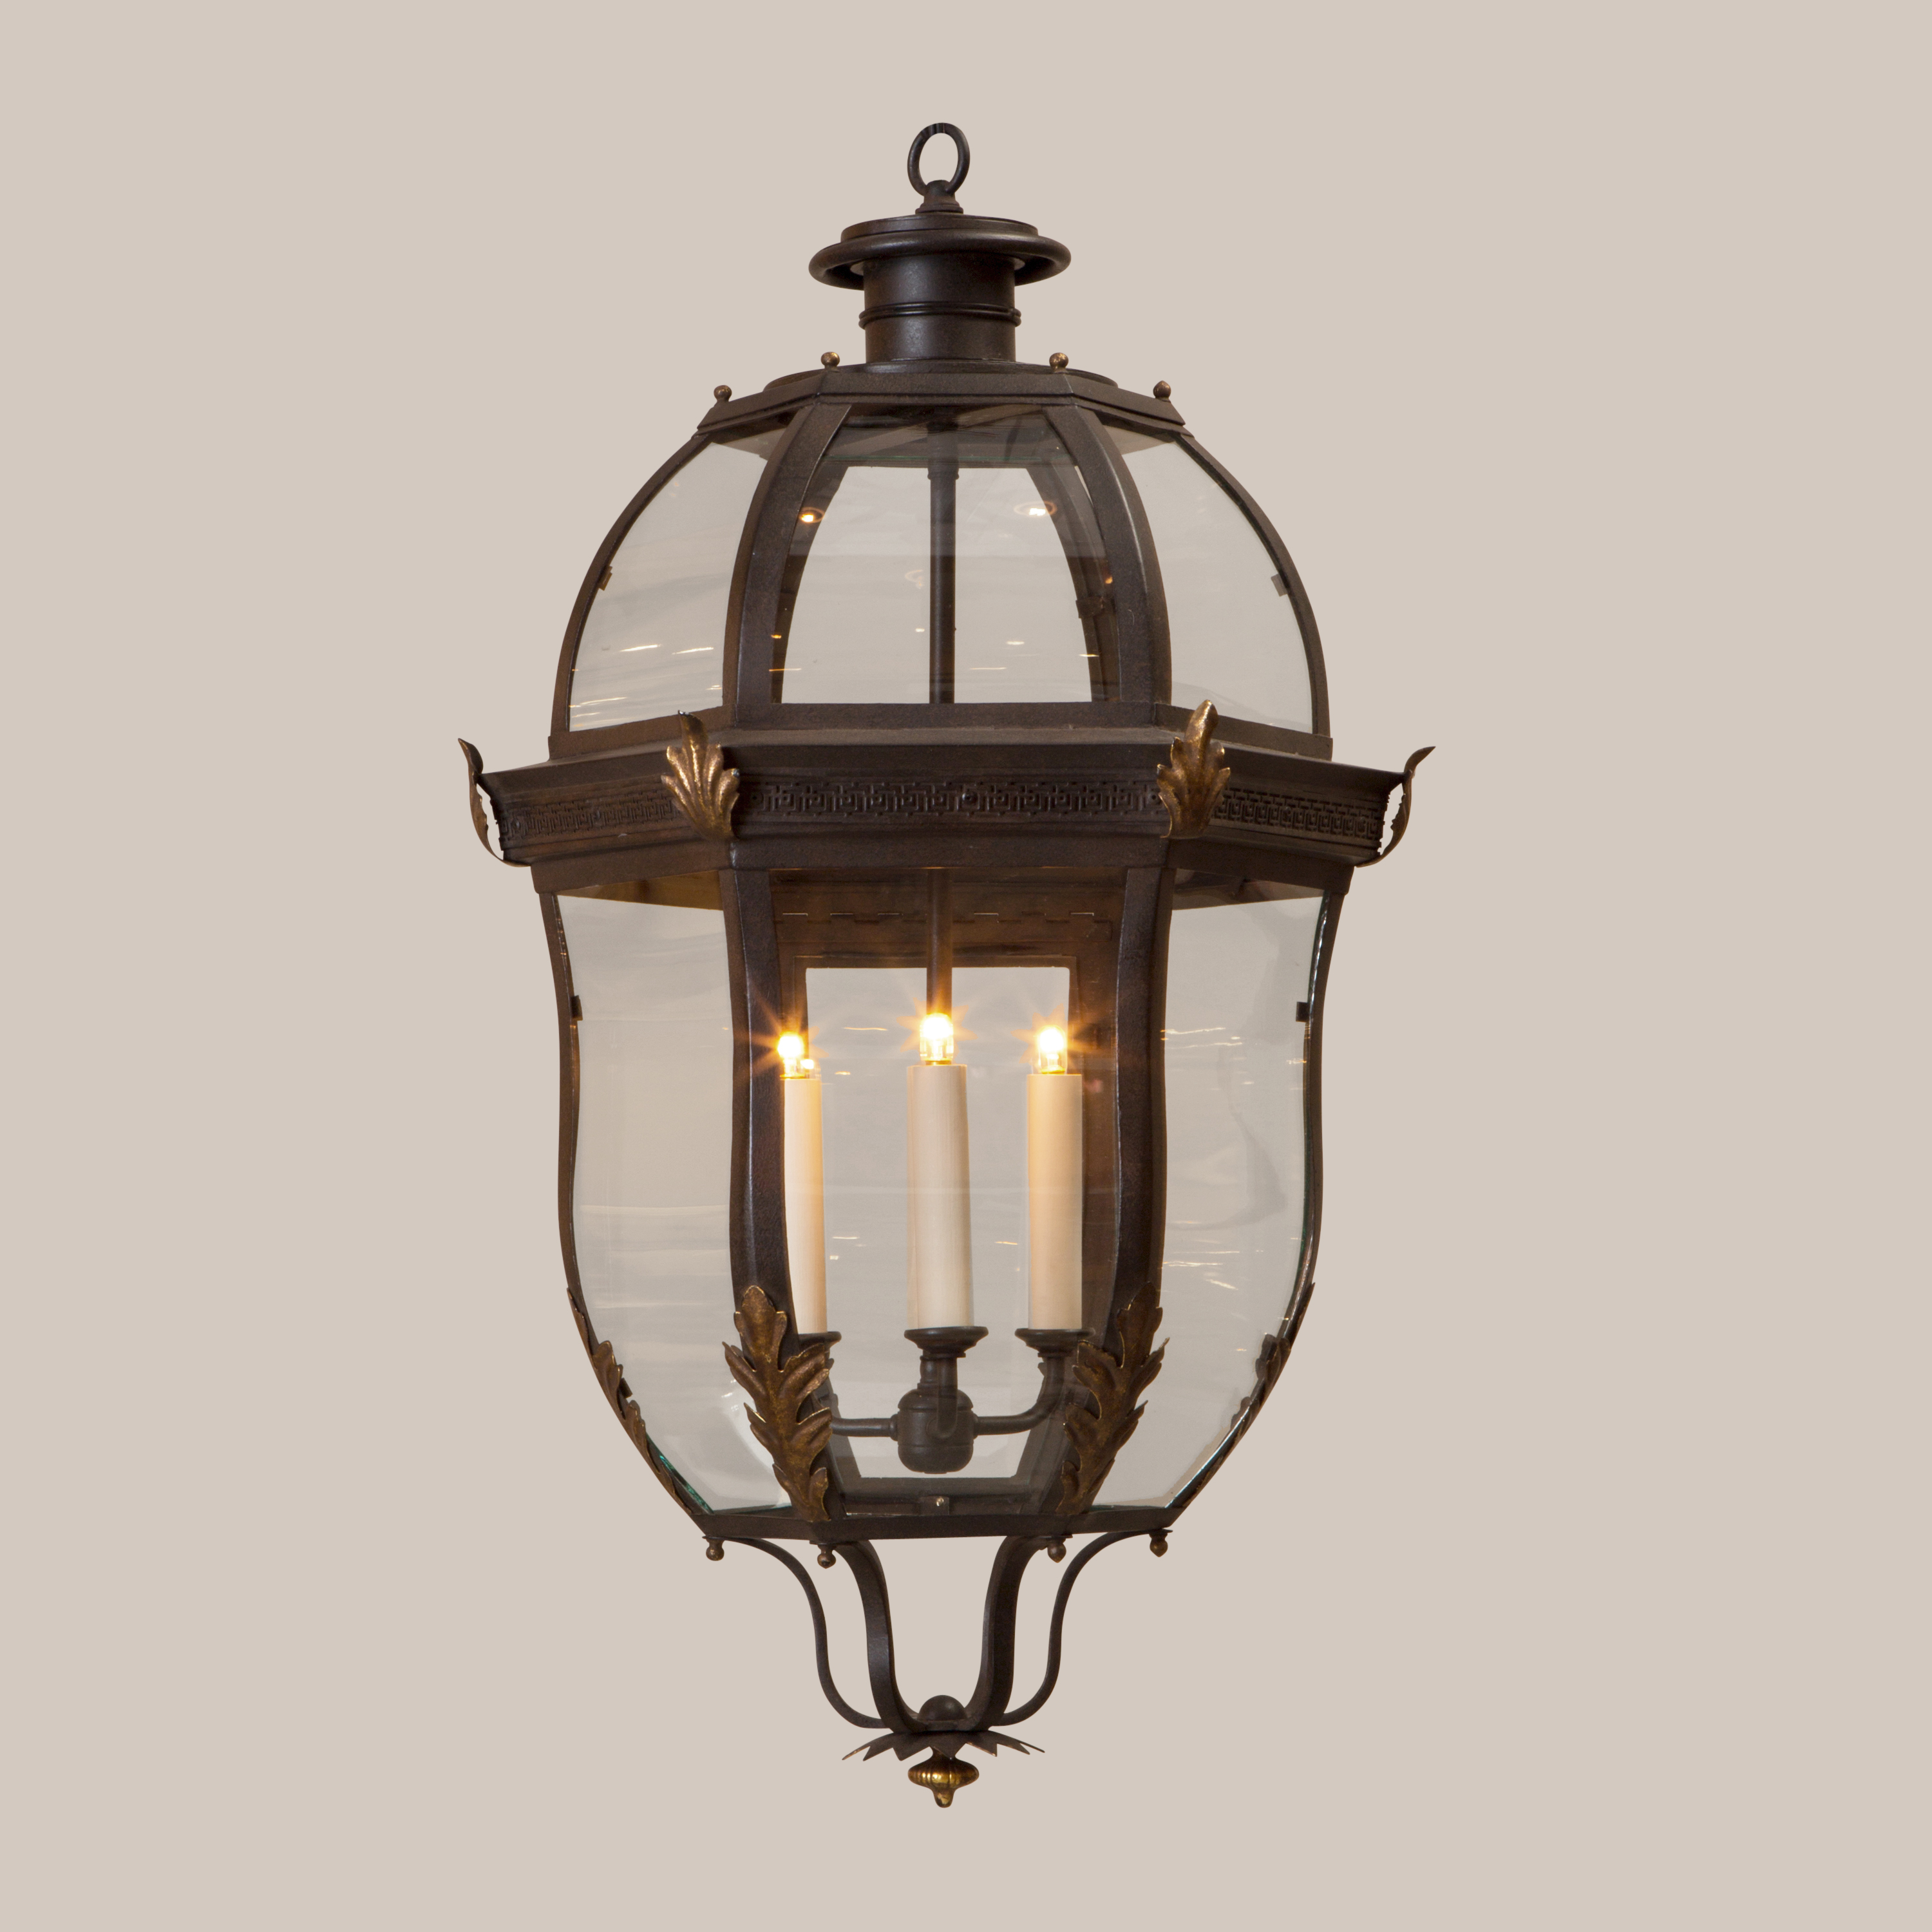 4005-L Large Normandie Hanging Lantern